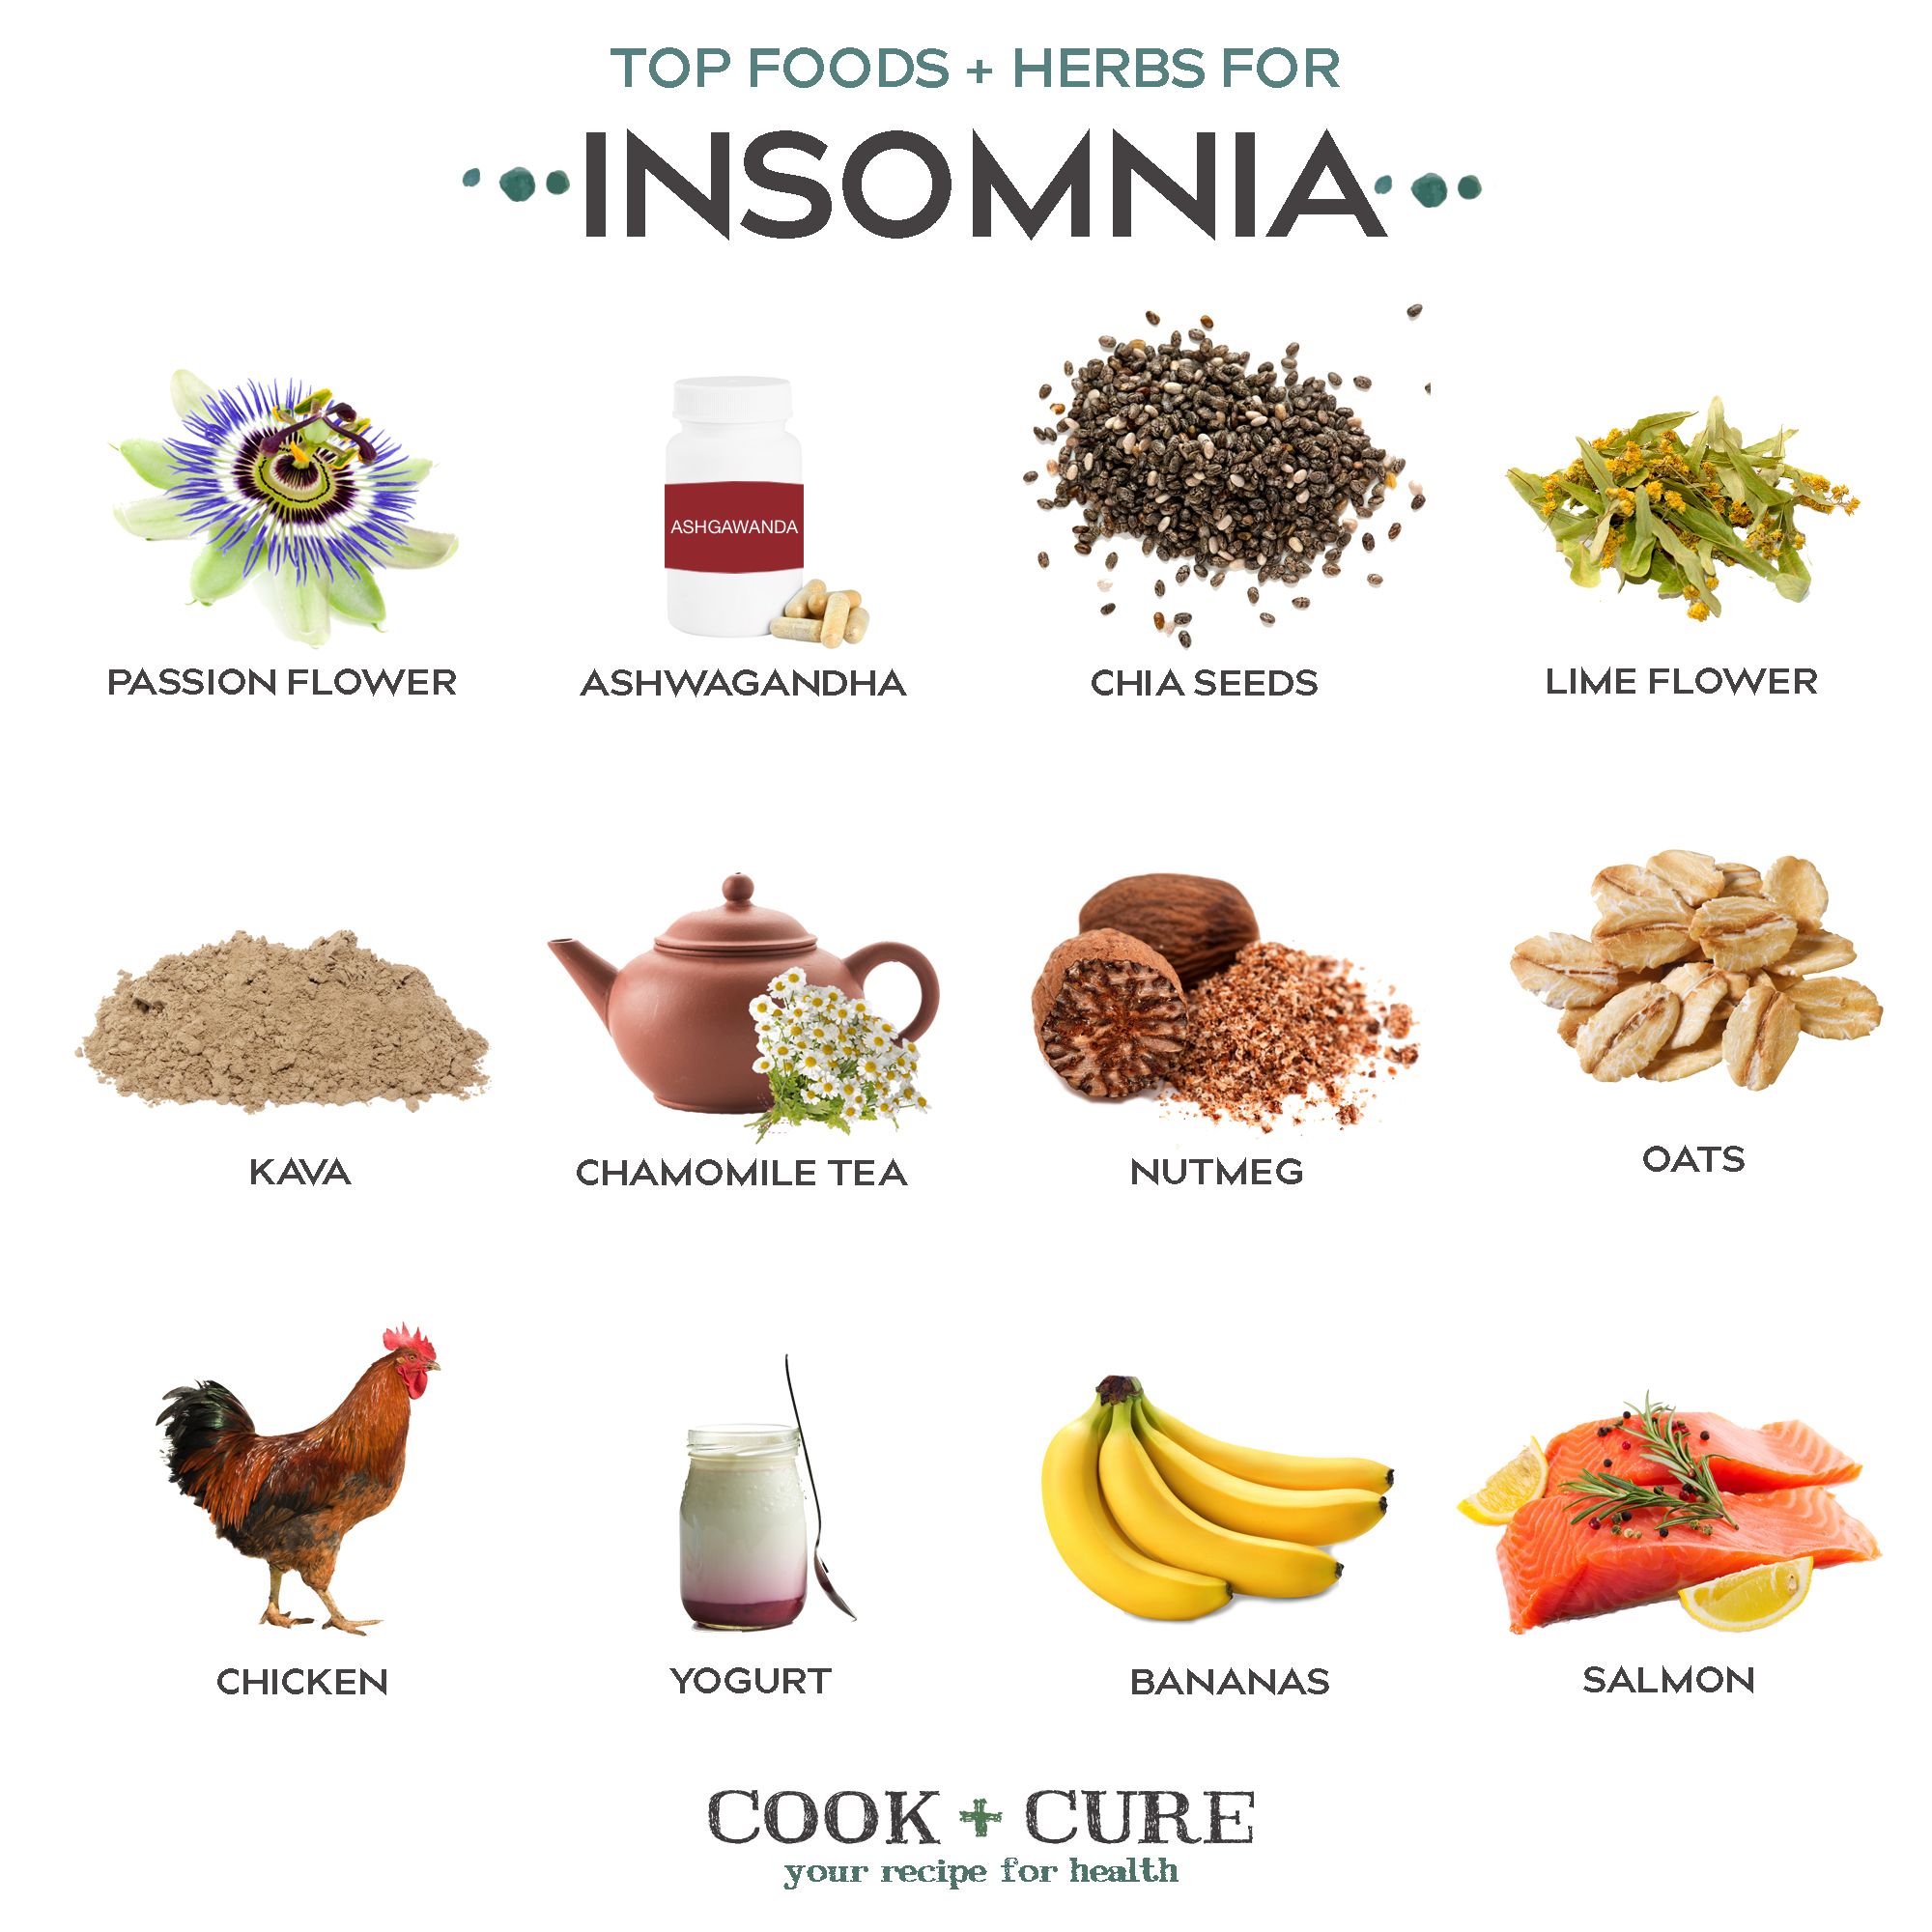 Diet and Insomnia – Foods That Cause Insomnia